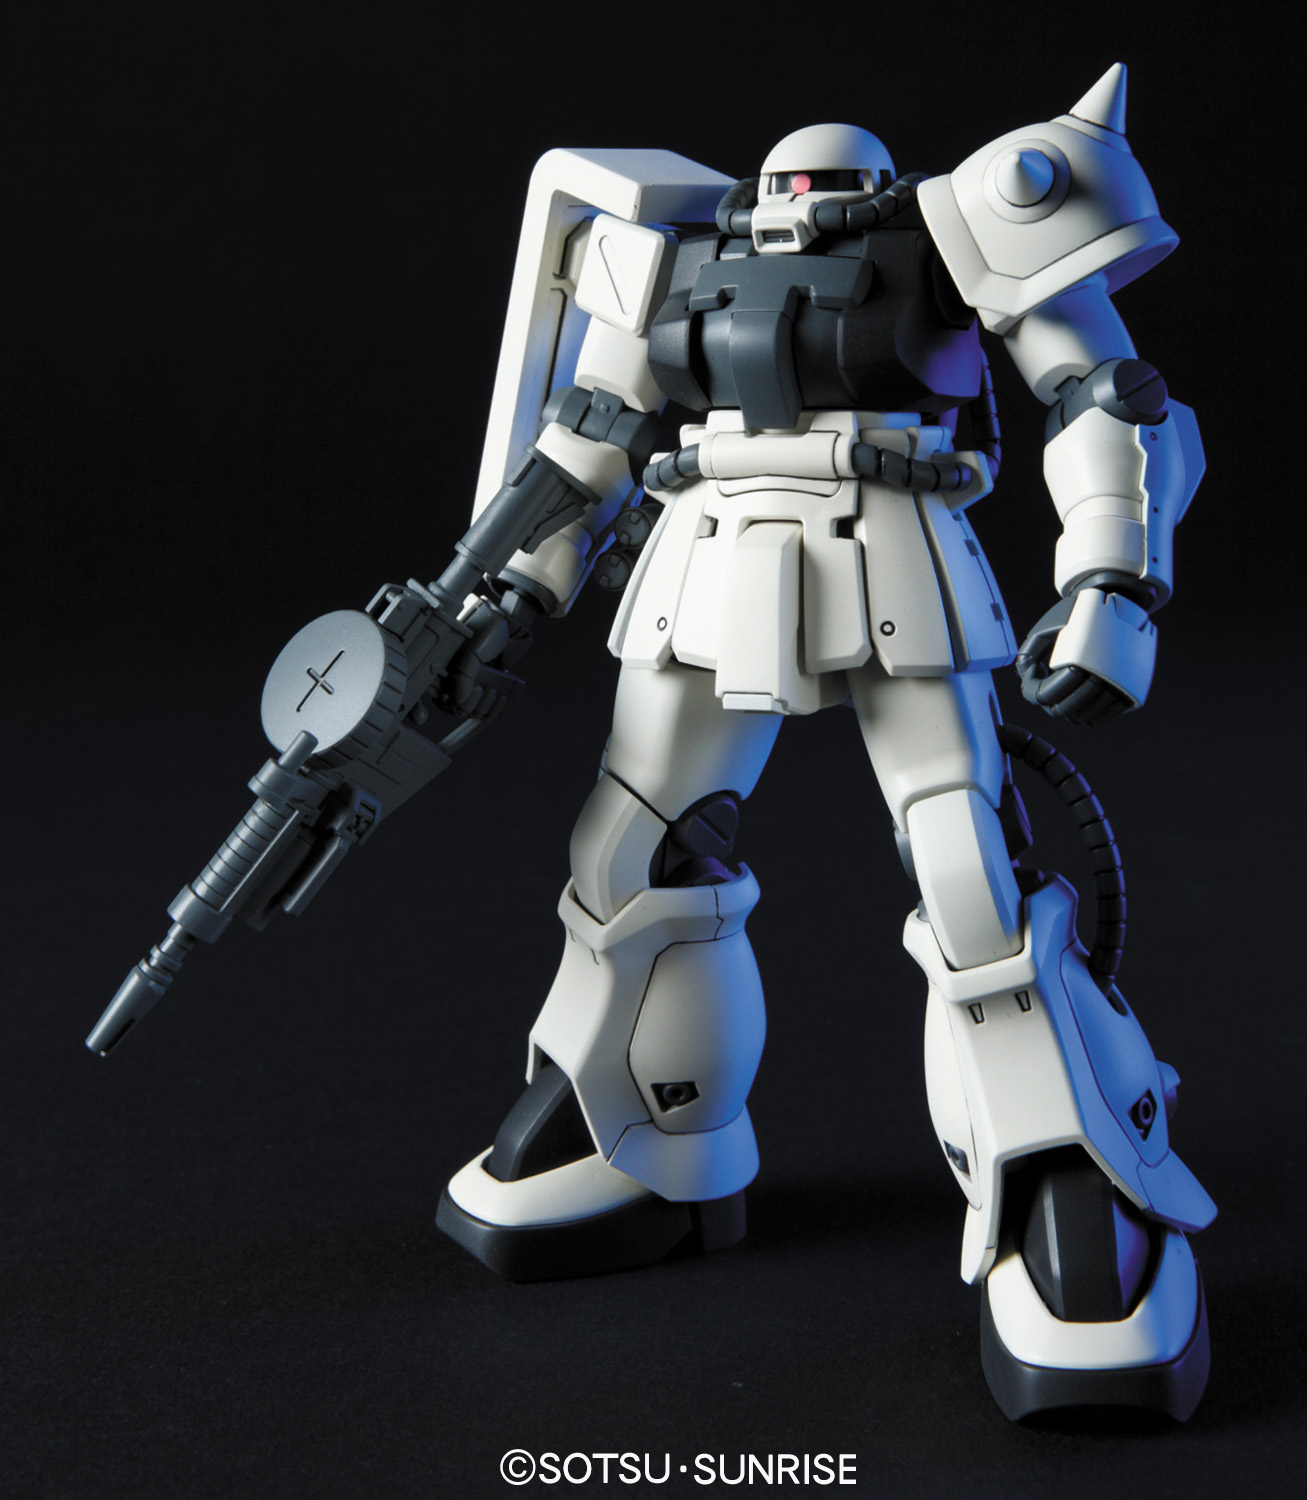 539HGUC 1/144 MS-06F-2 ザクIIF2型 連邦軍仕様 [Zaku II F2 (E.F.S.F Version)] 5057745 4573102577450 0162048 4543112620484